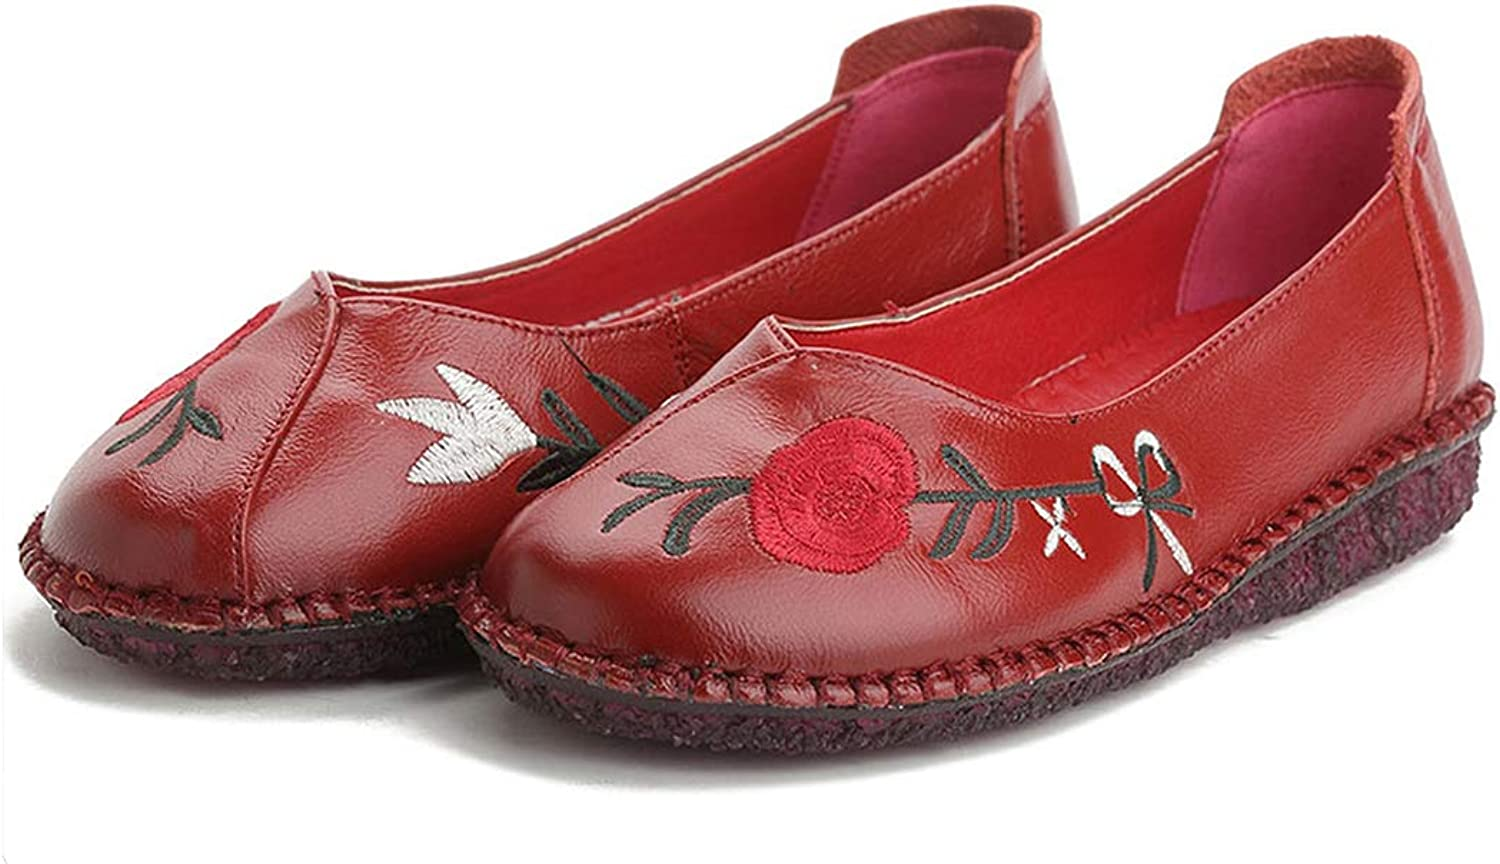 Good-memories Women Flat shoes Women Handmade Genuine Leather Flat-Heeled shoes Round Toe shoes Fashion Summer shoes